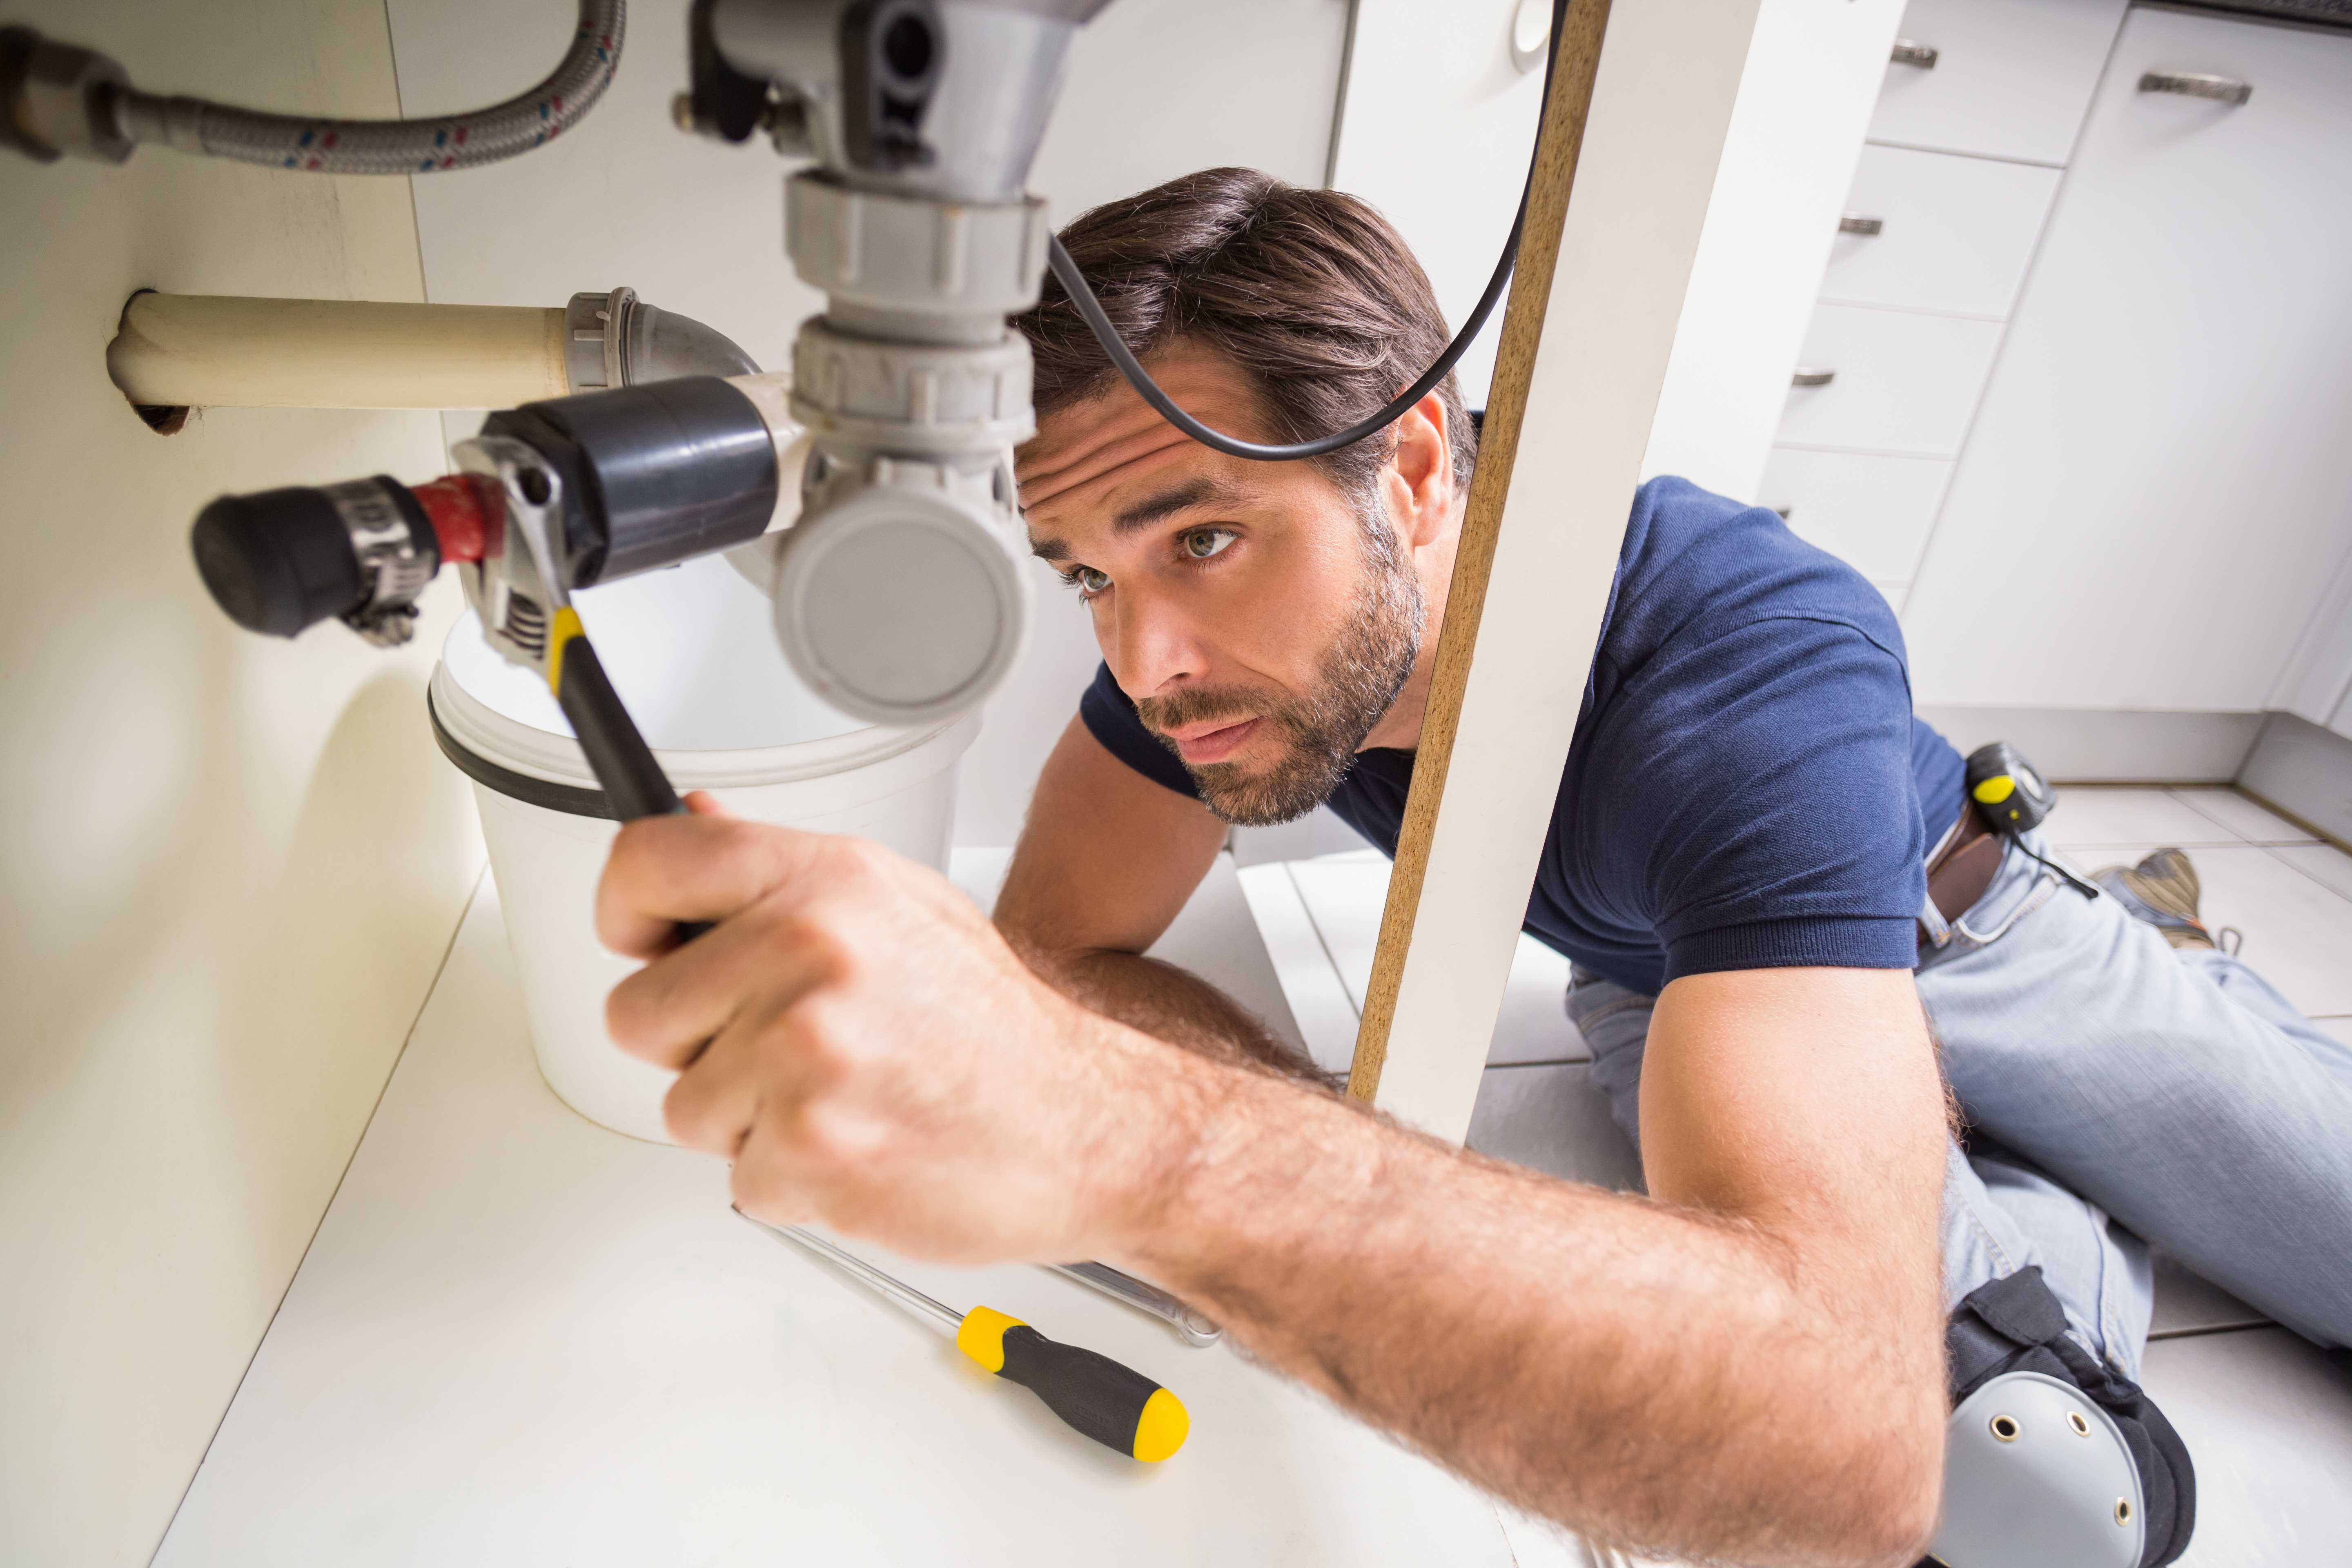 A Plumber Fixing a Pipe